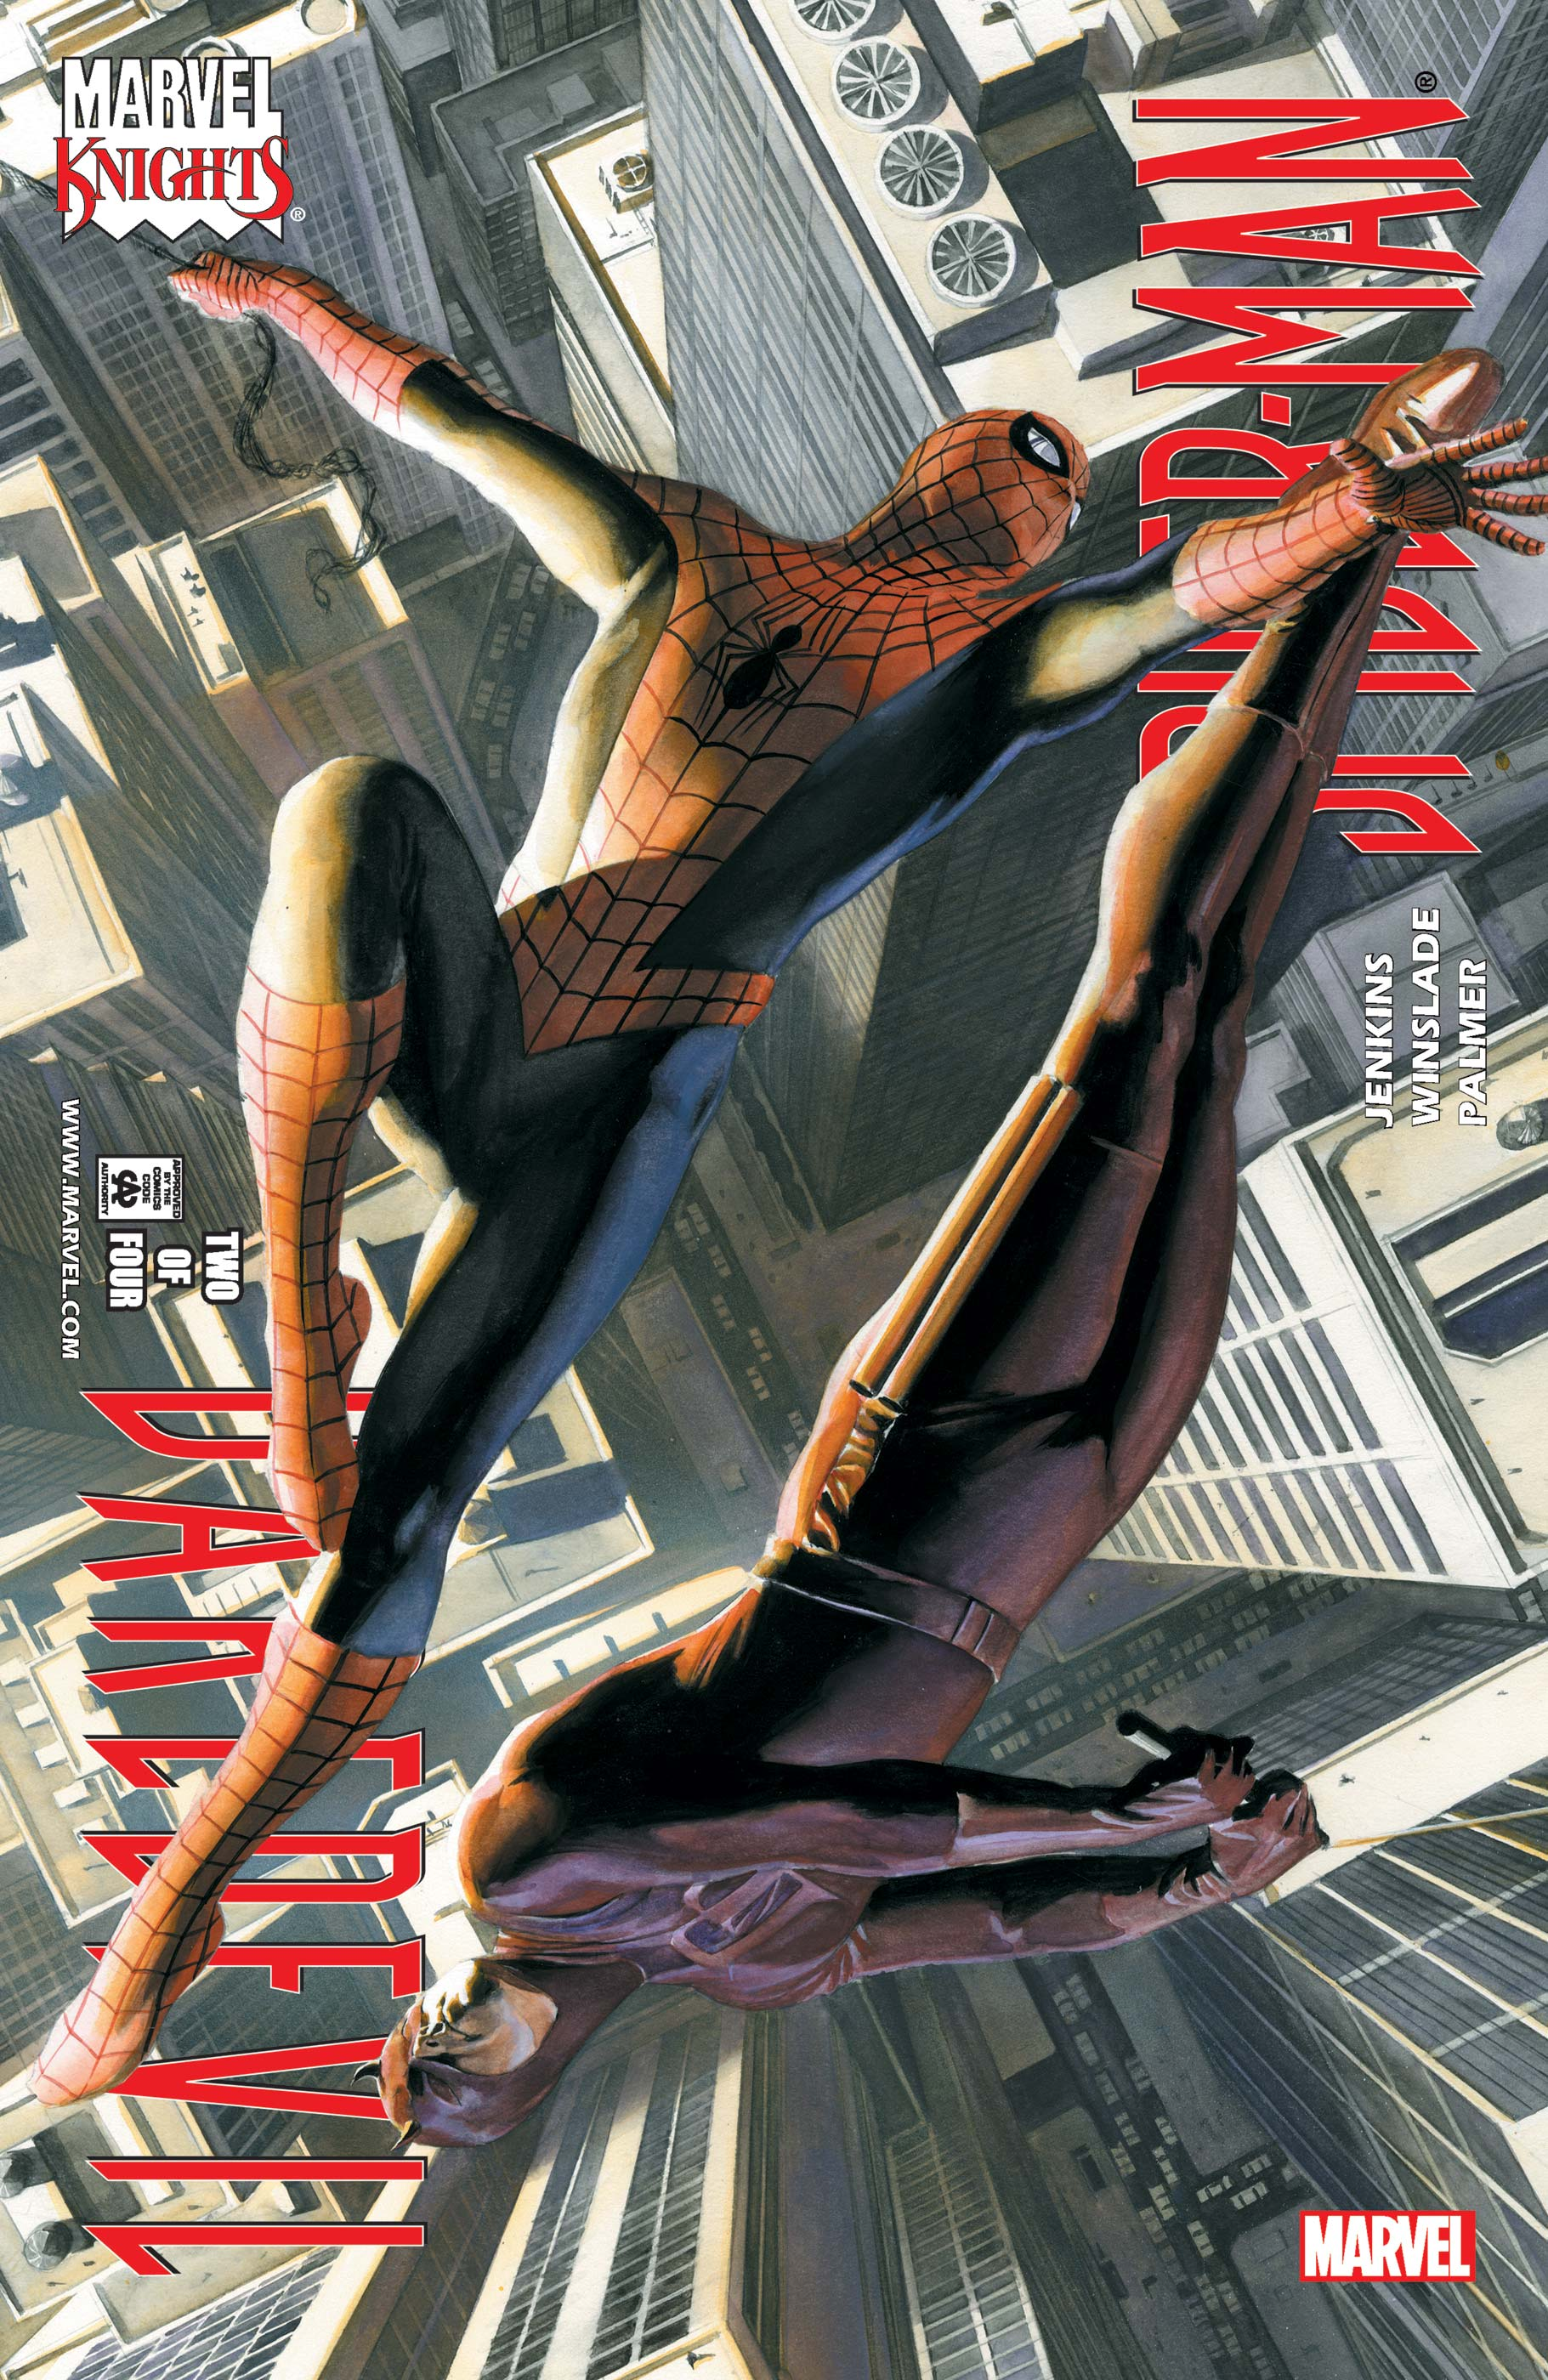 Daredevil/Spider-Man (2001) #2